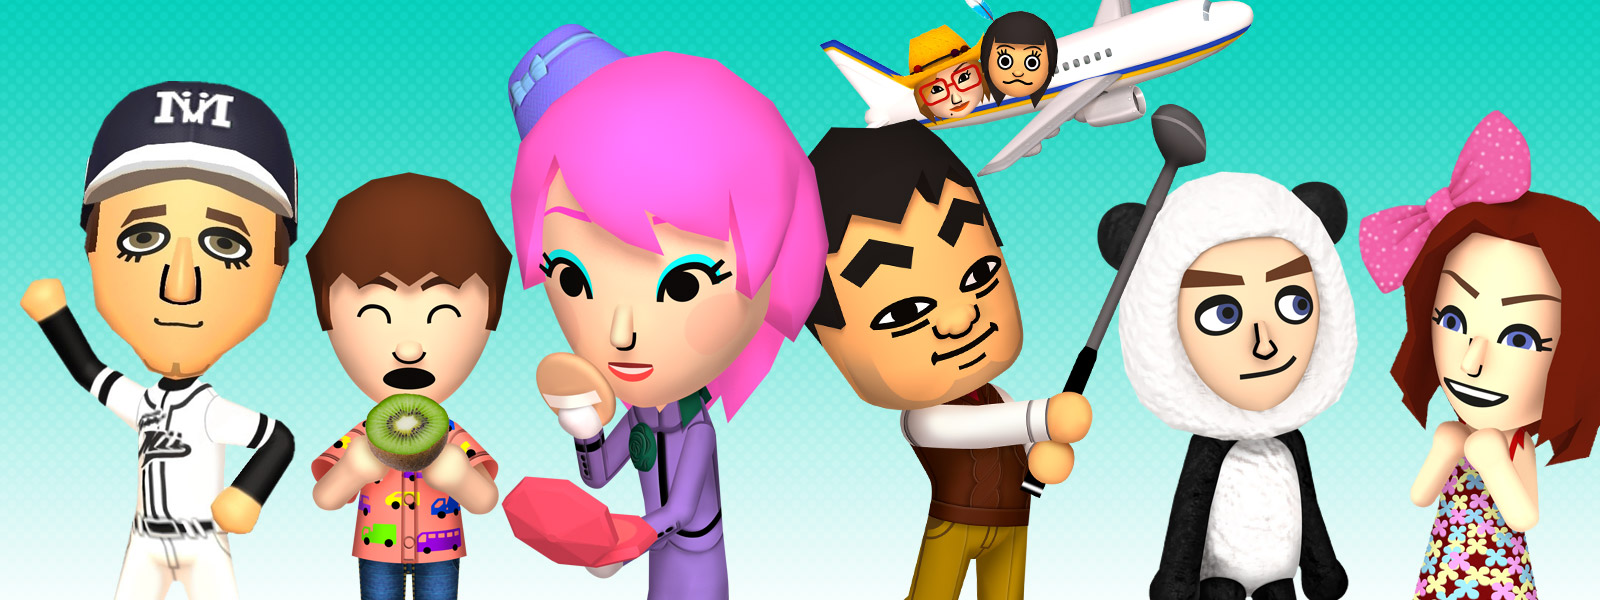 In life a how tomodachi to ruin relationship Can 2